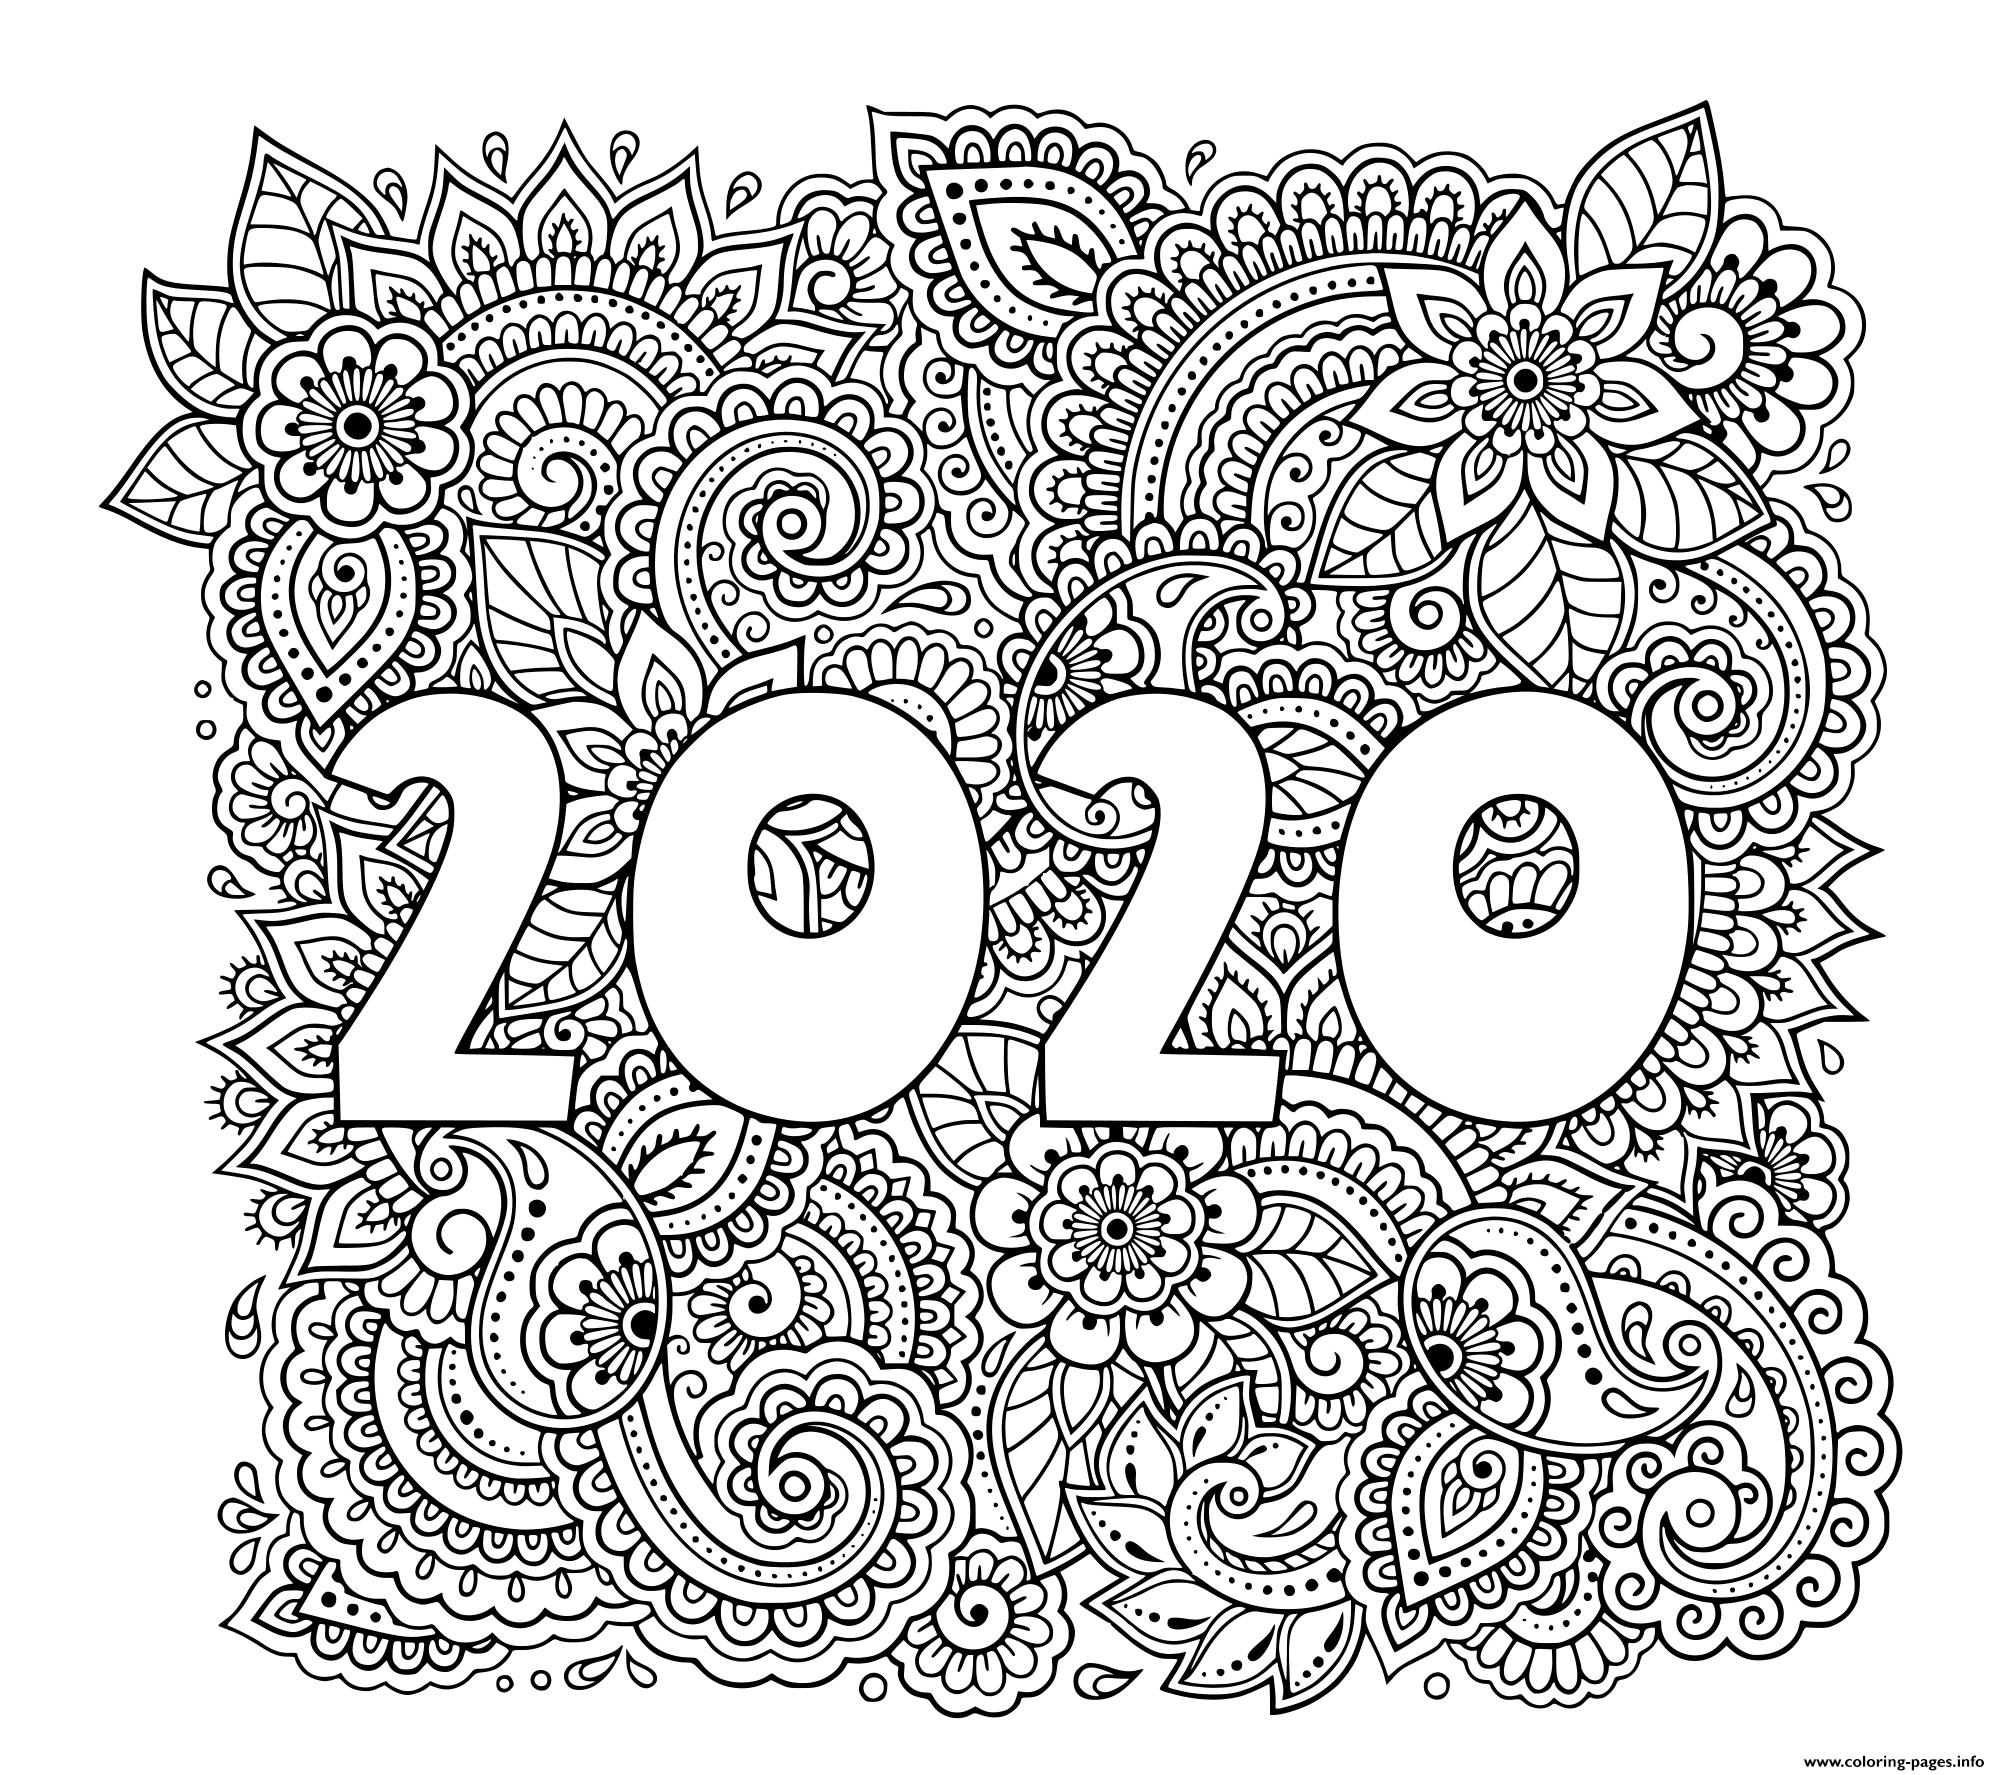 New Year 2020 Highly Detailed Decorative Floral Pattern Coloring